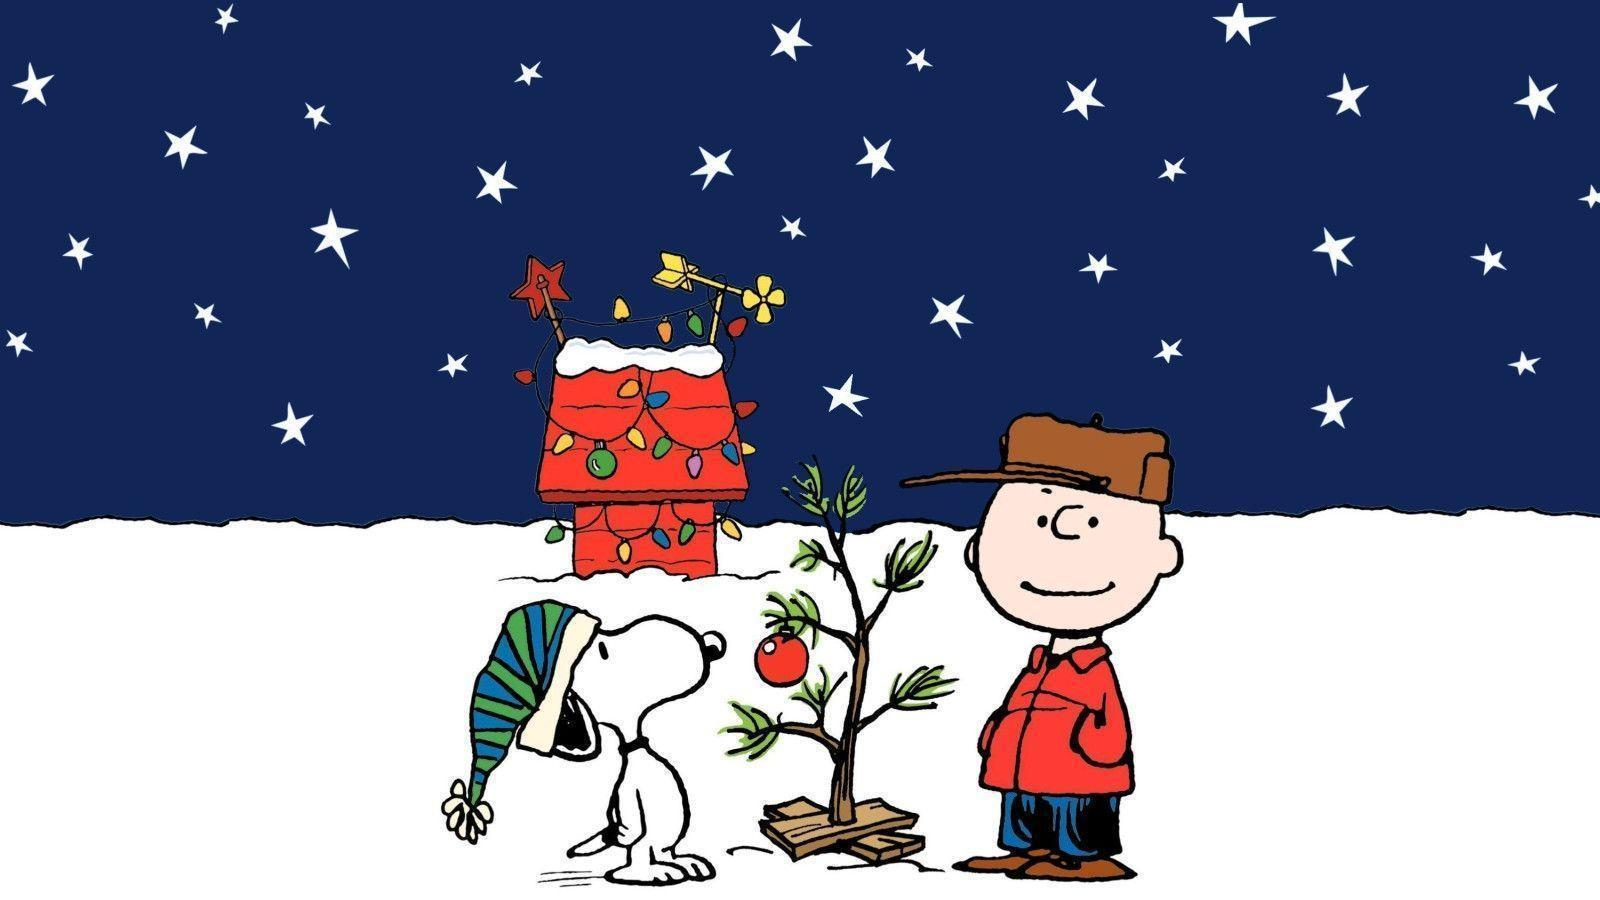 Snoopy Christmas Pictures | Full Desktop Backgrounds